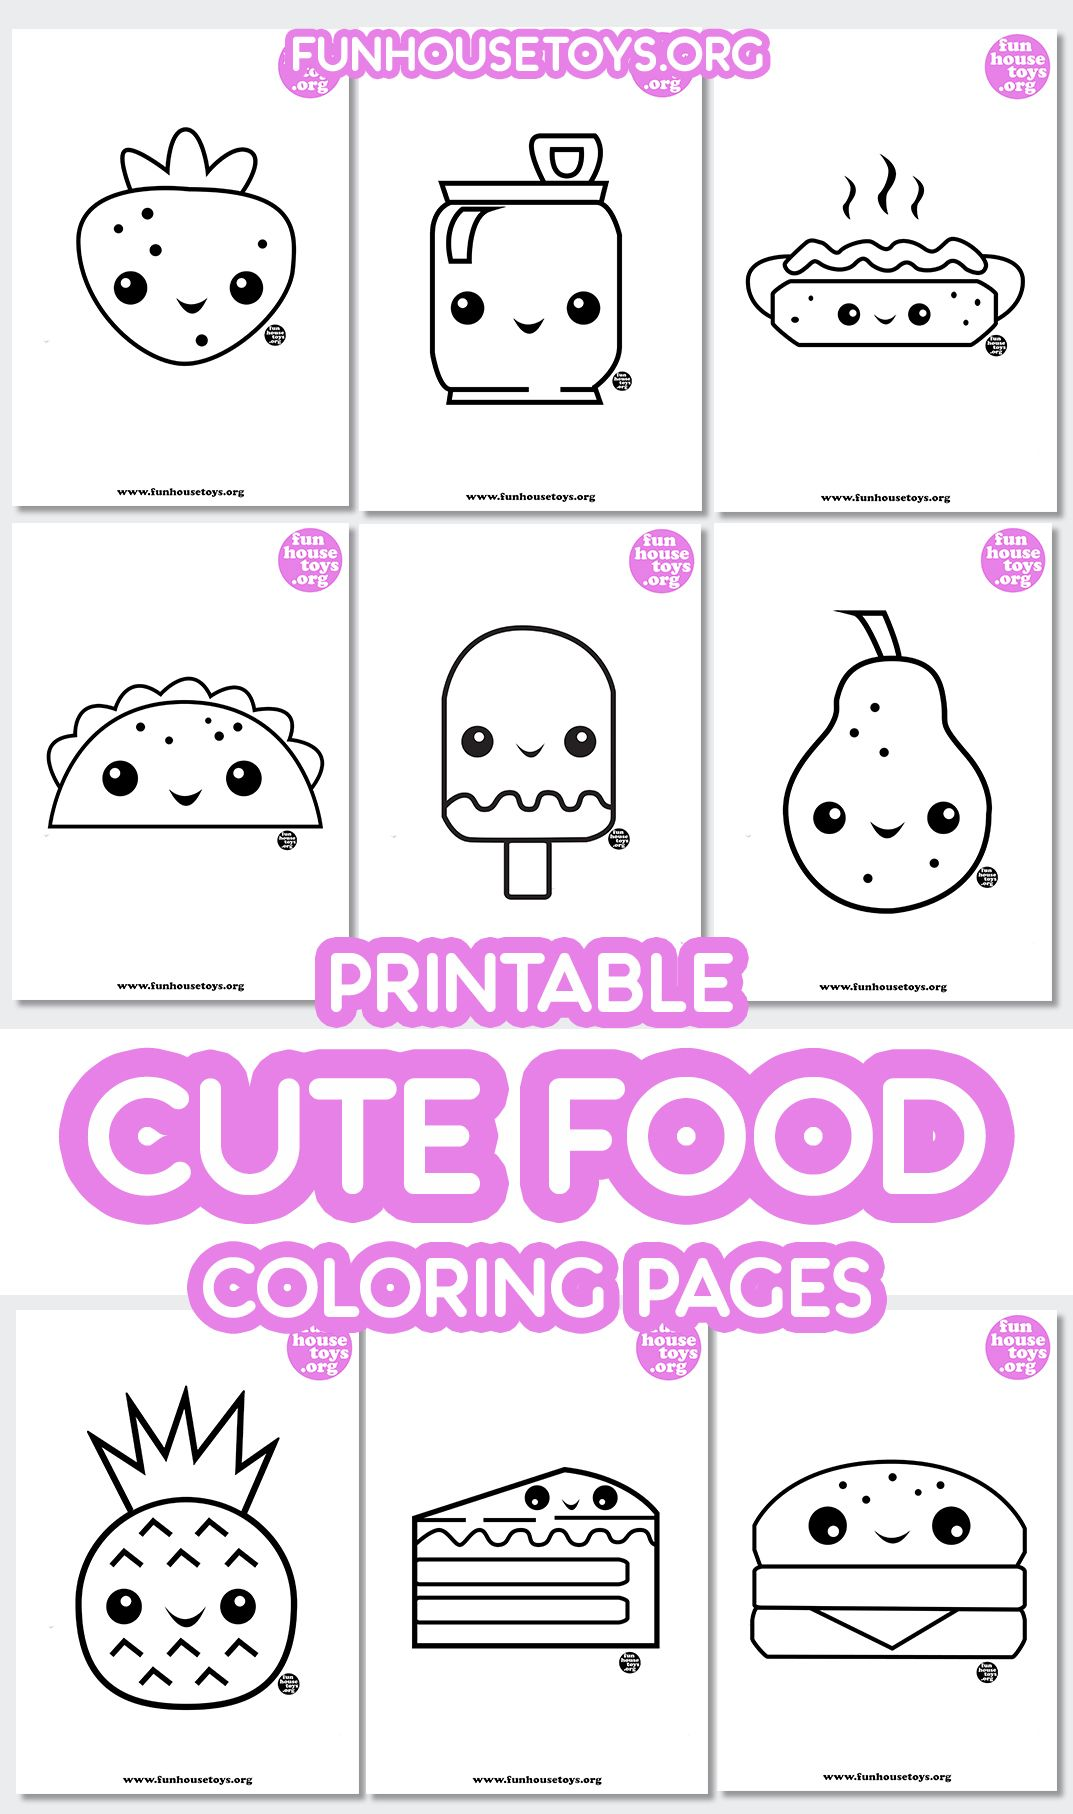 Printable Cute Food Coloring Pages For Kids With Drawing Guide Step By Step Fun Printables For Kids Coloring Pages Food Coloring Pages